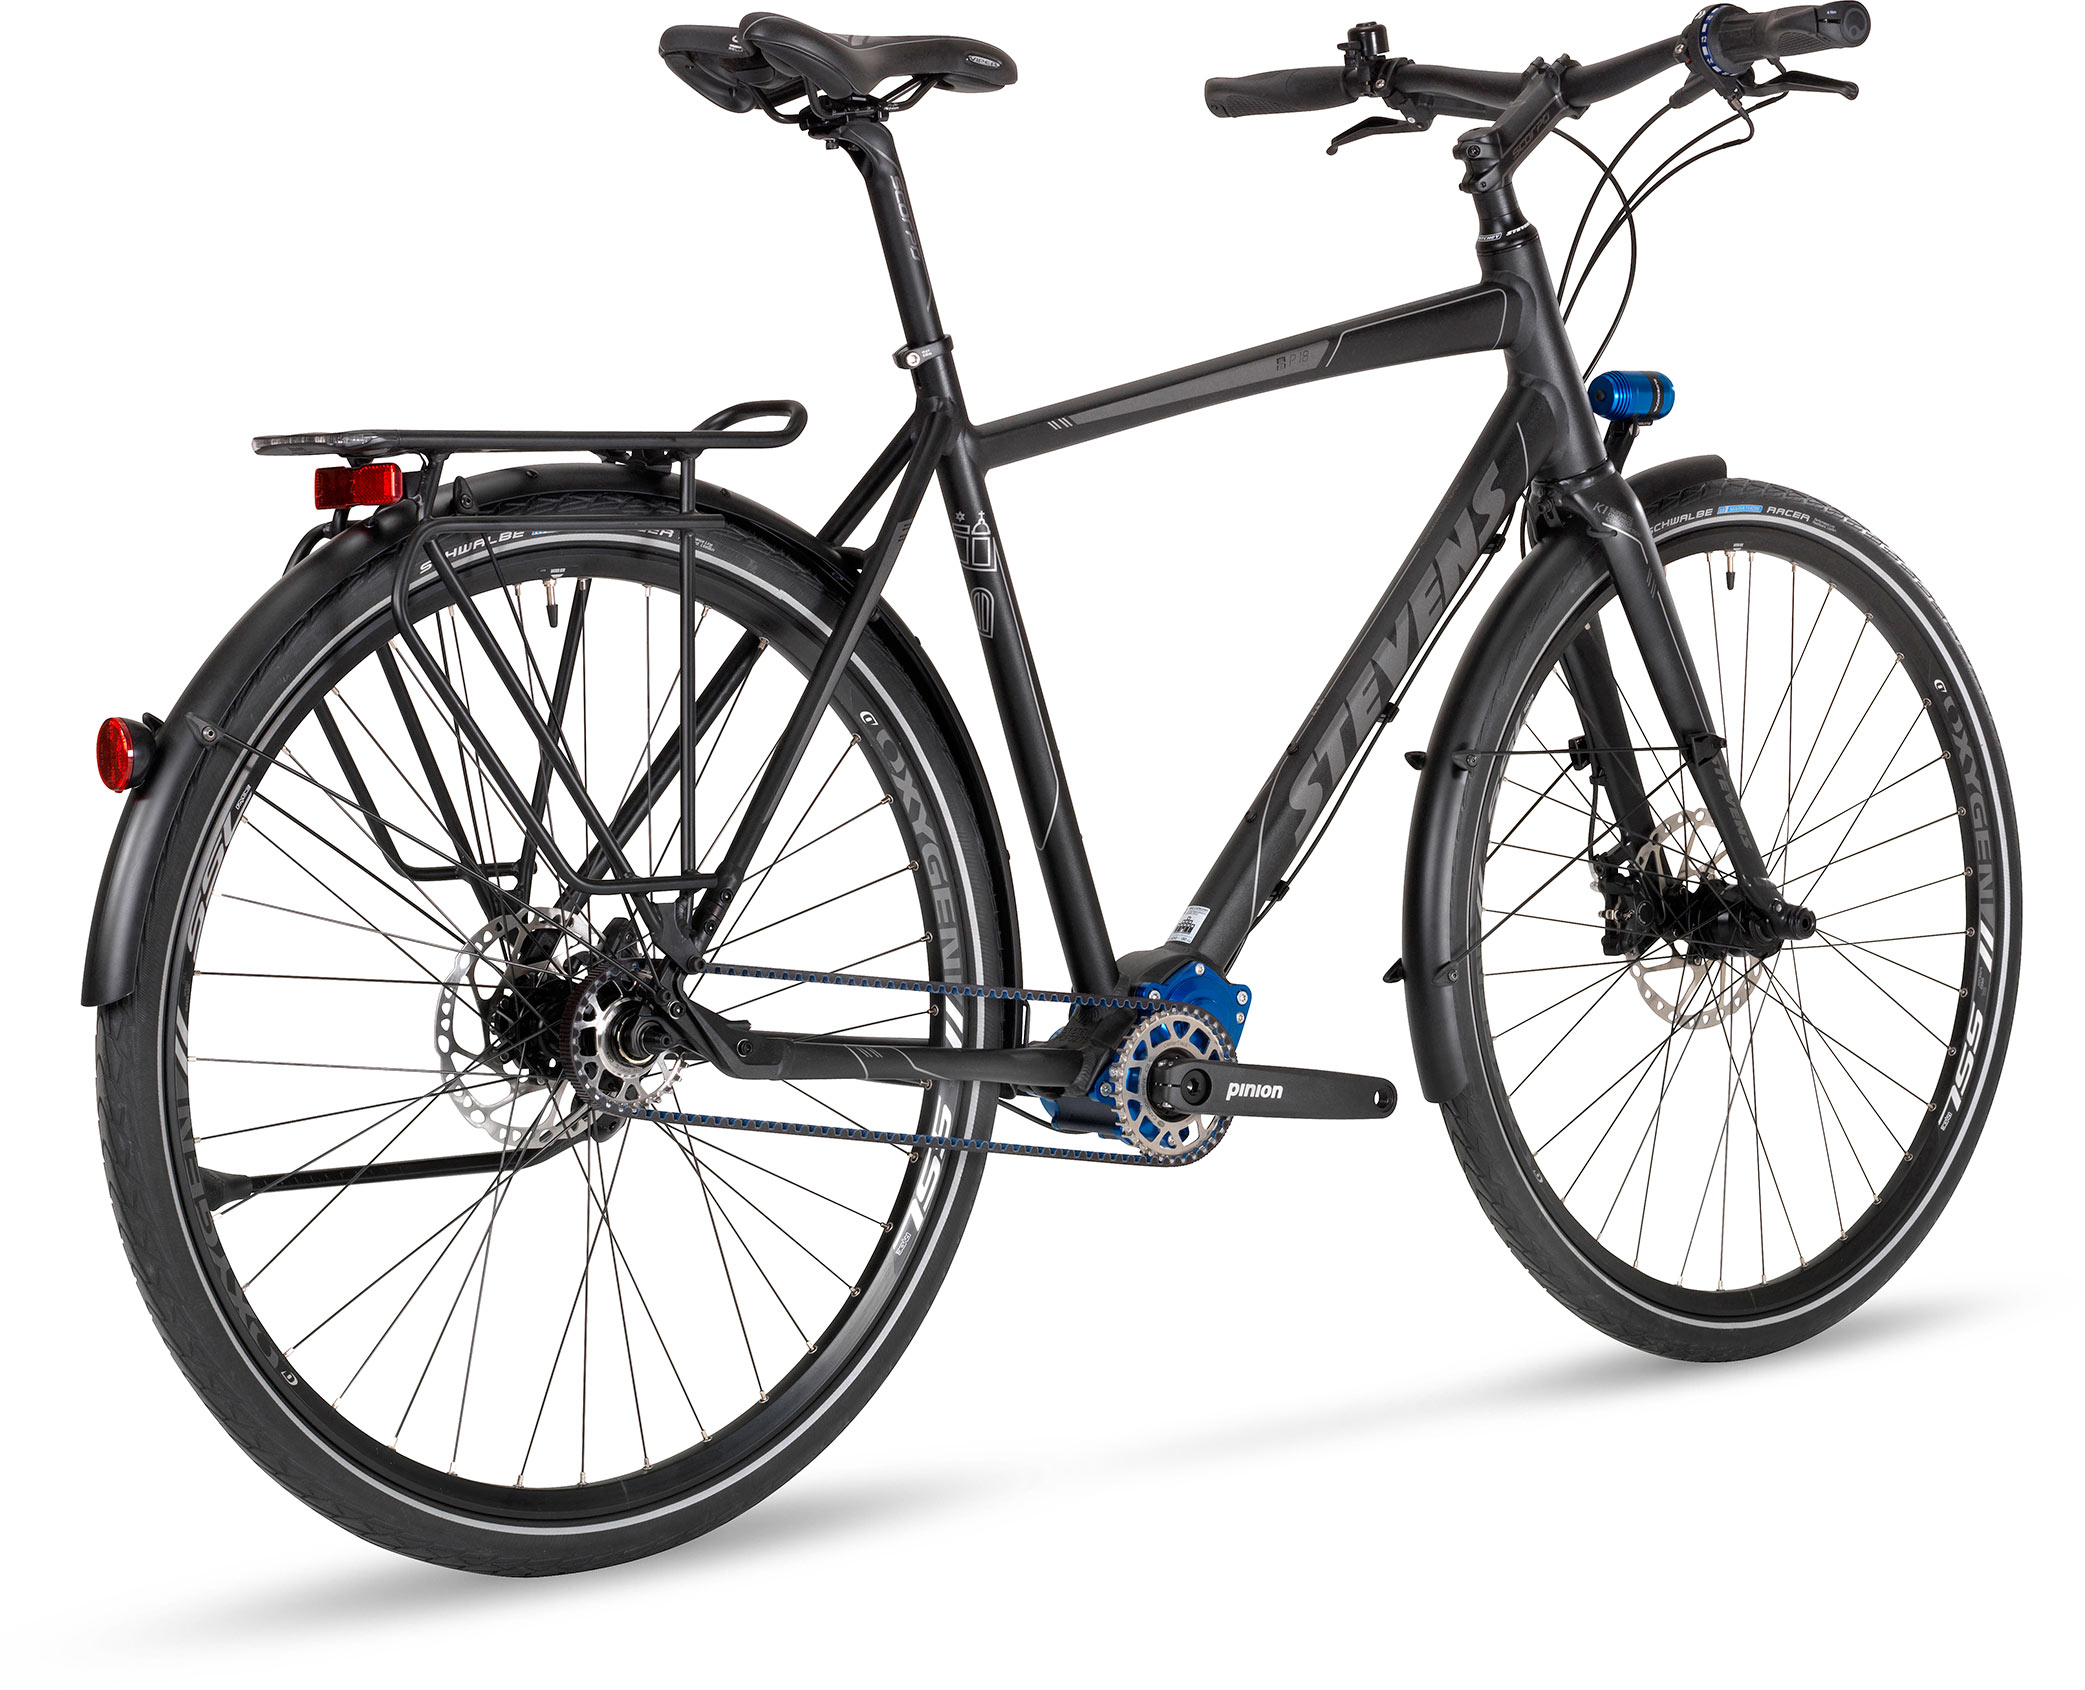 Buyers' Guide: 10 Best Gates Carbon Belt Drive Bikes